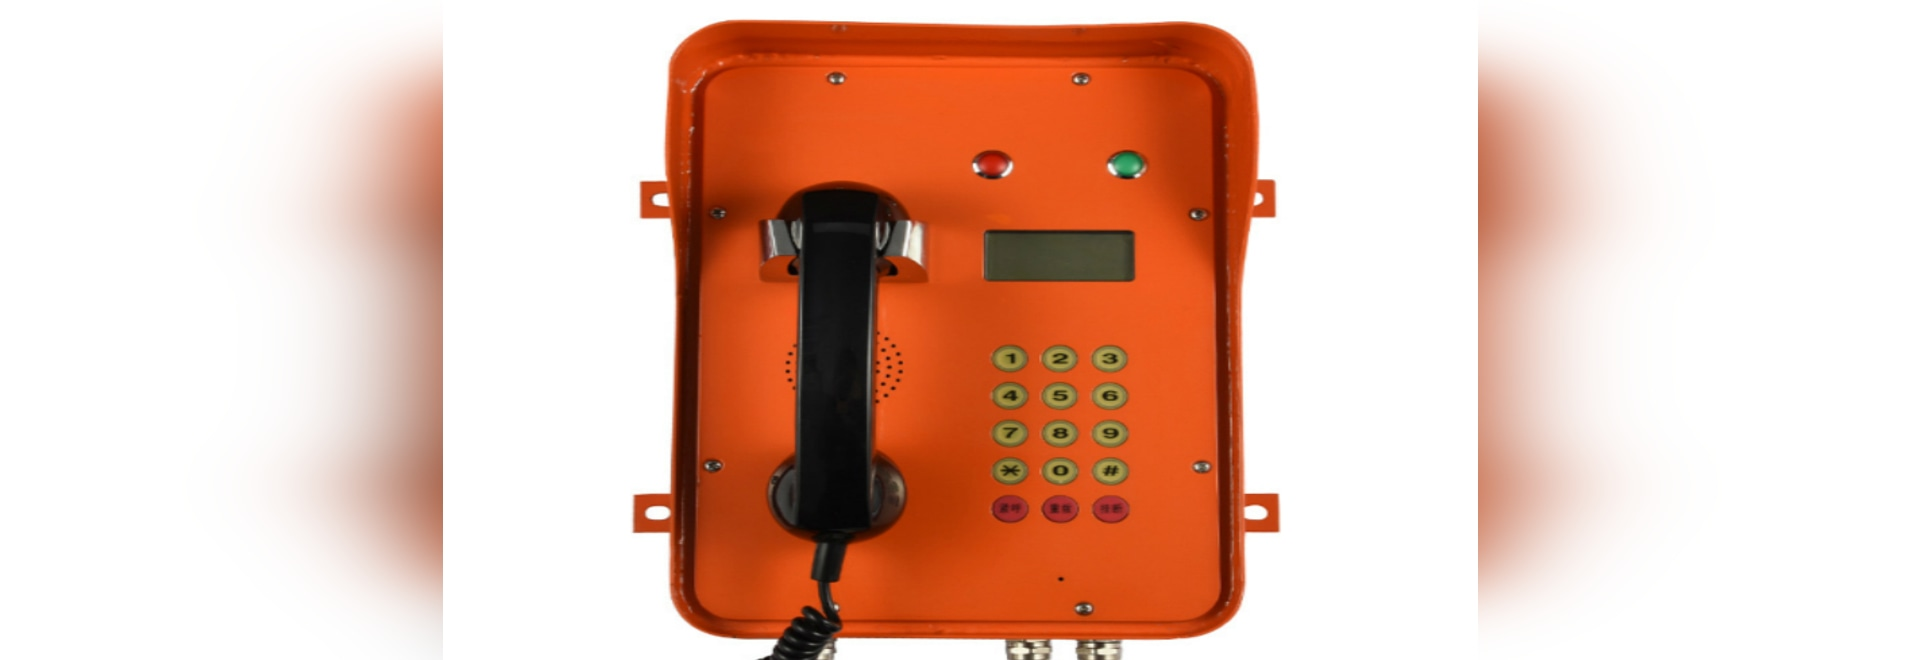 Introduction of  Joiwo's rugged   industrial telephone with LCD display